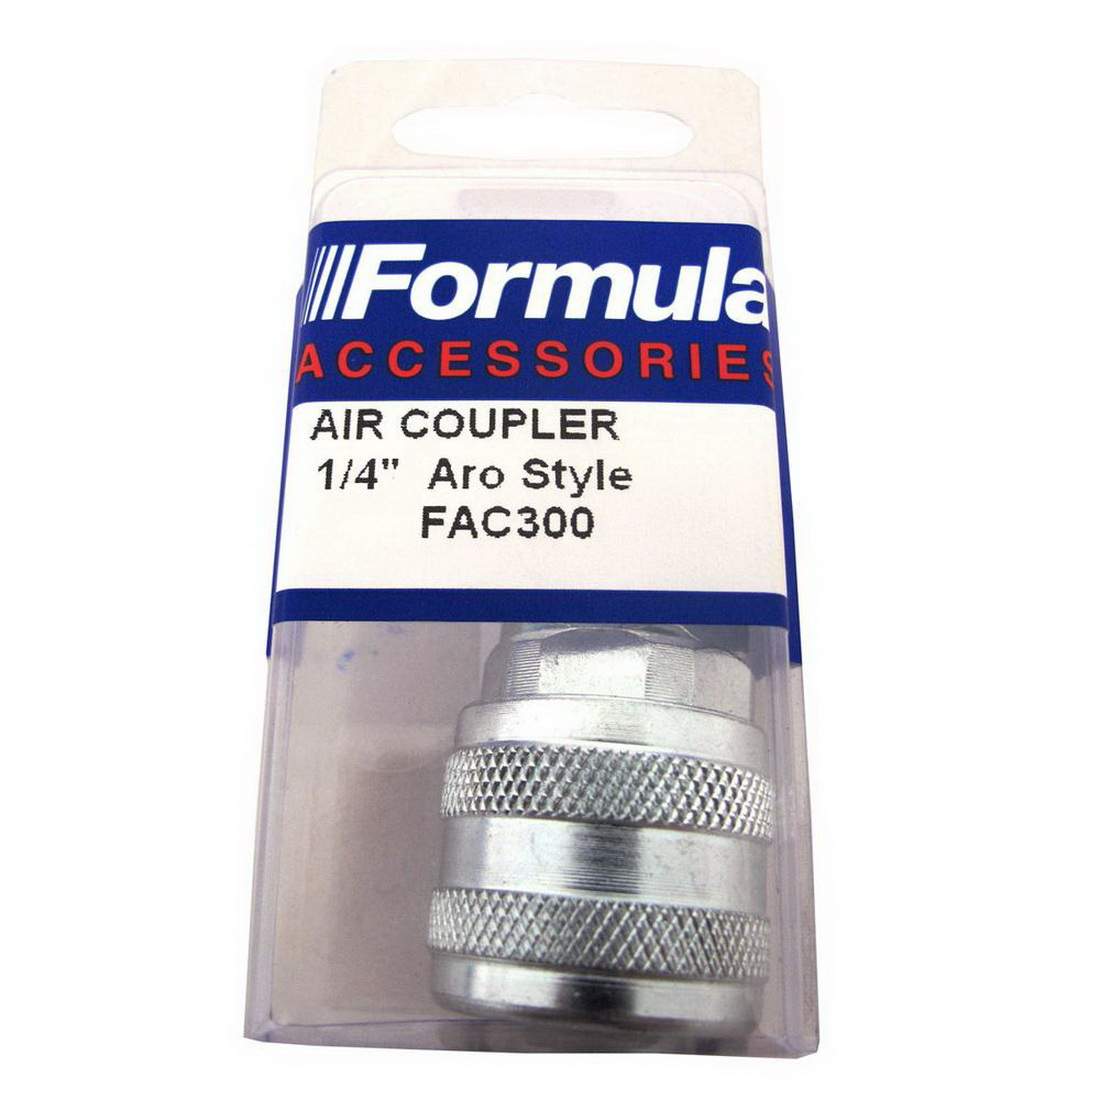 Formula Aro Style Air Coupler 1/4in Female FAC300